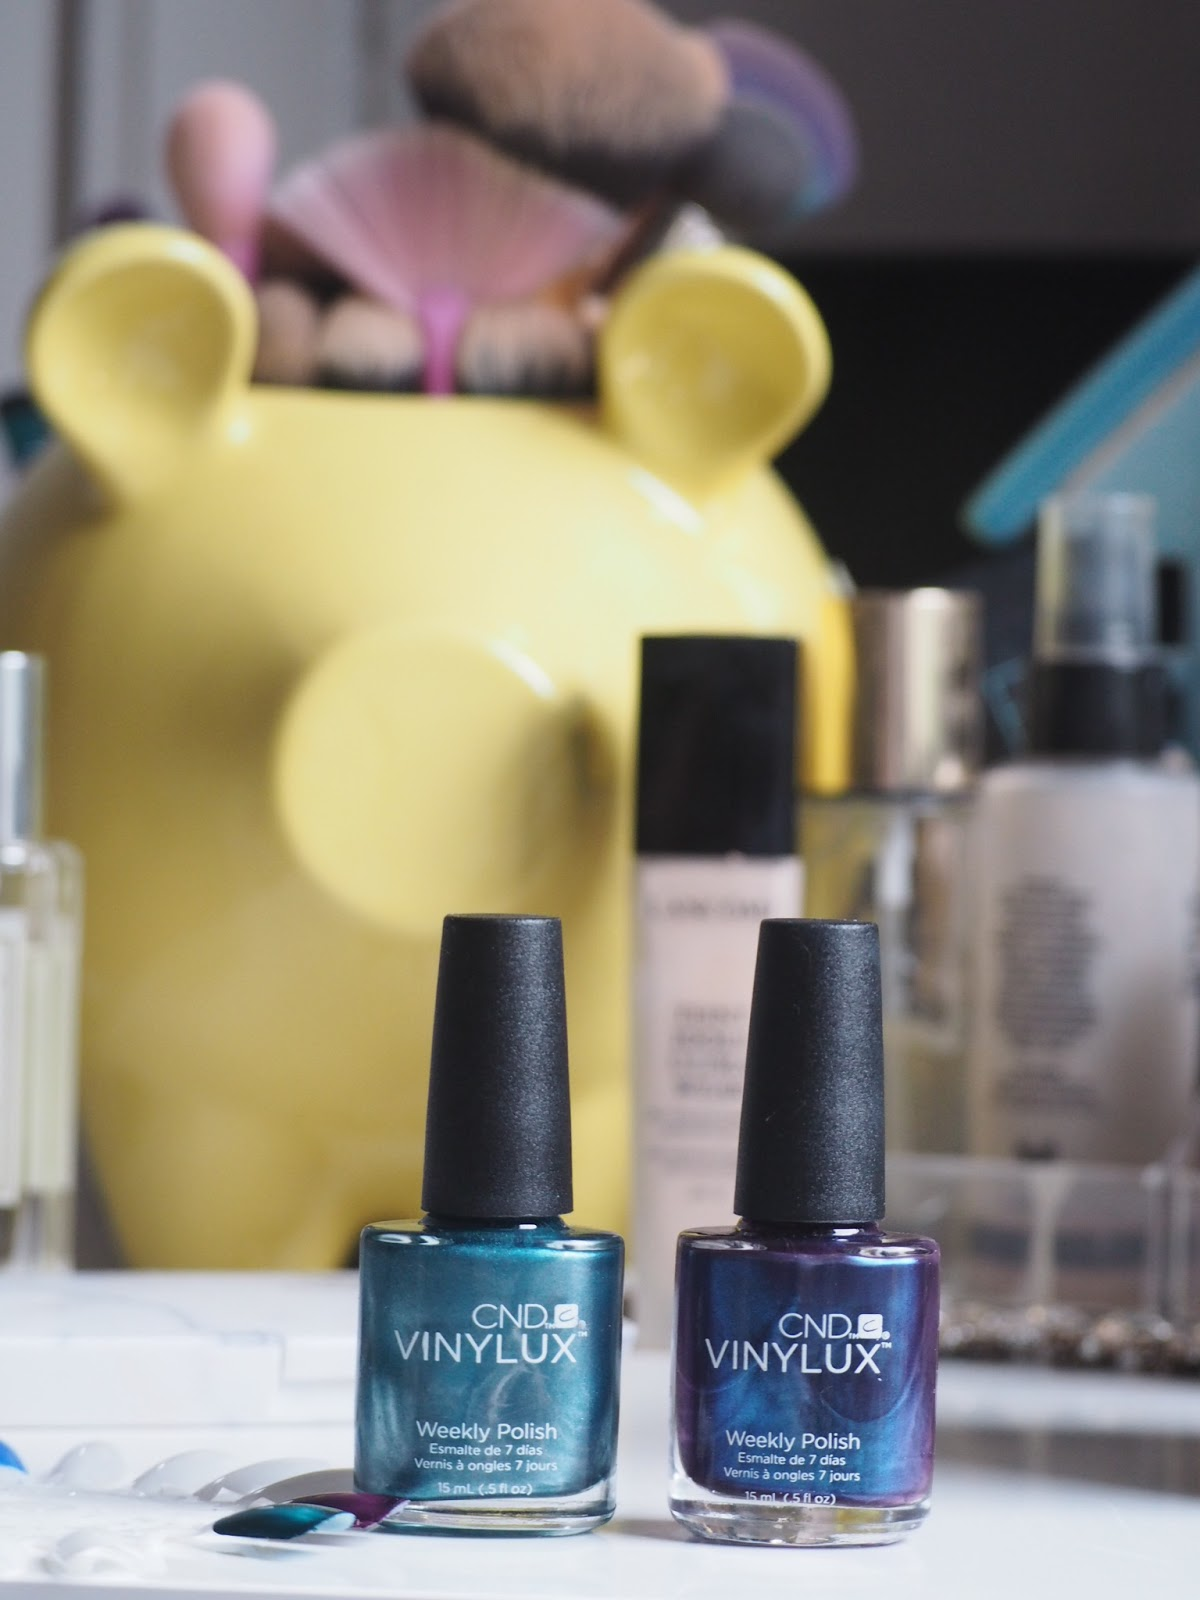 CND Vinylux NightSpell 2017 Weekly Nail Polish Collection*